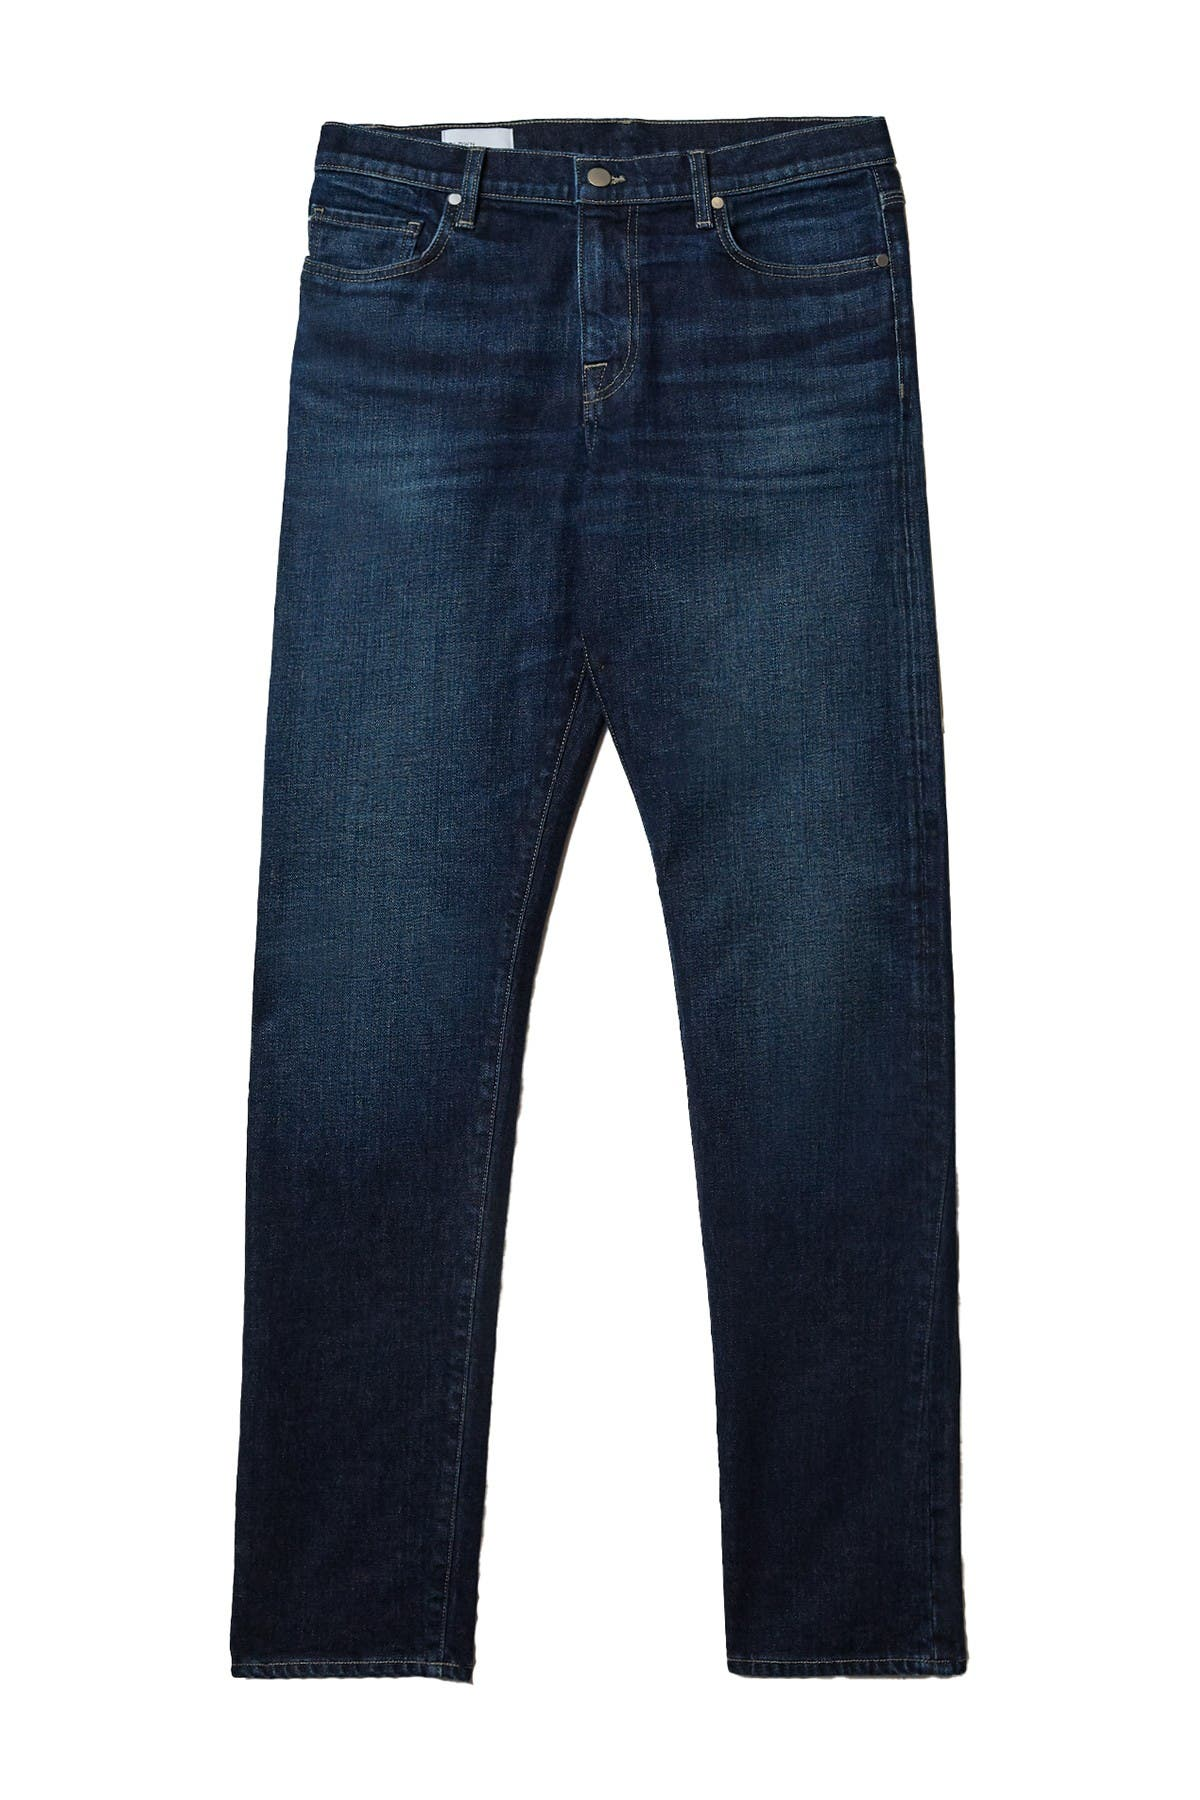 Image of BALDWIN Modern Slim Fit Jeans